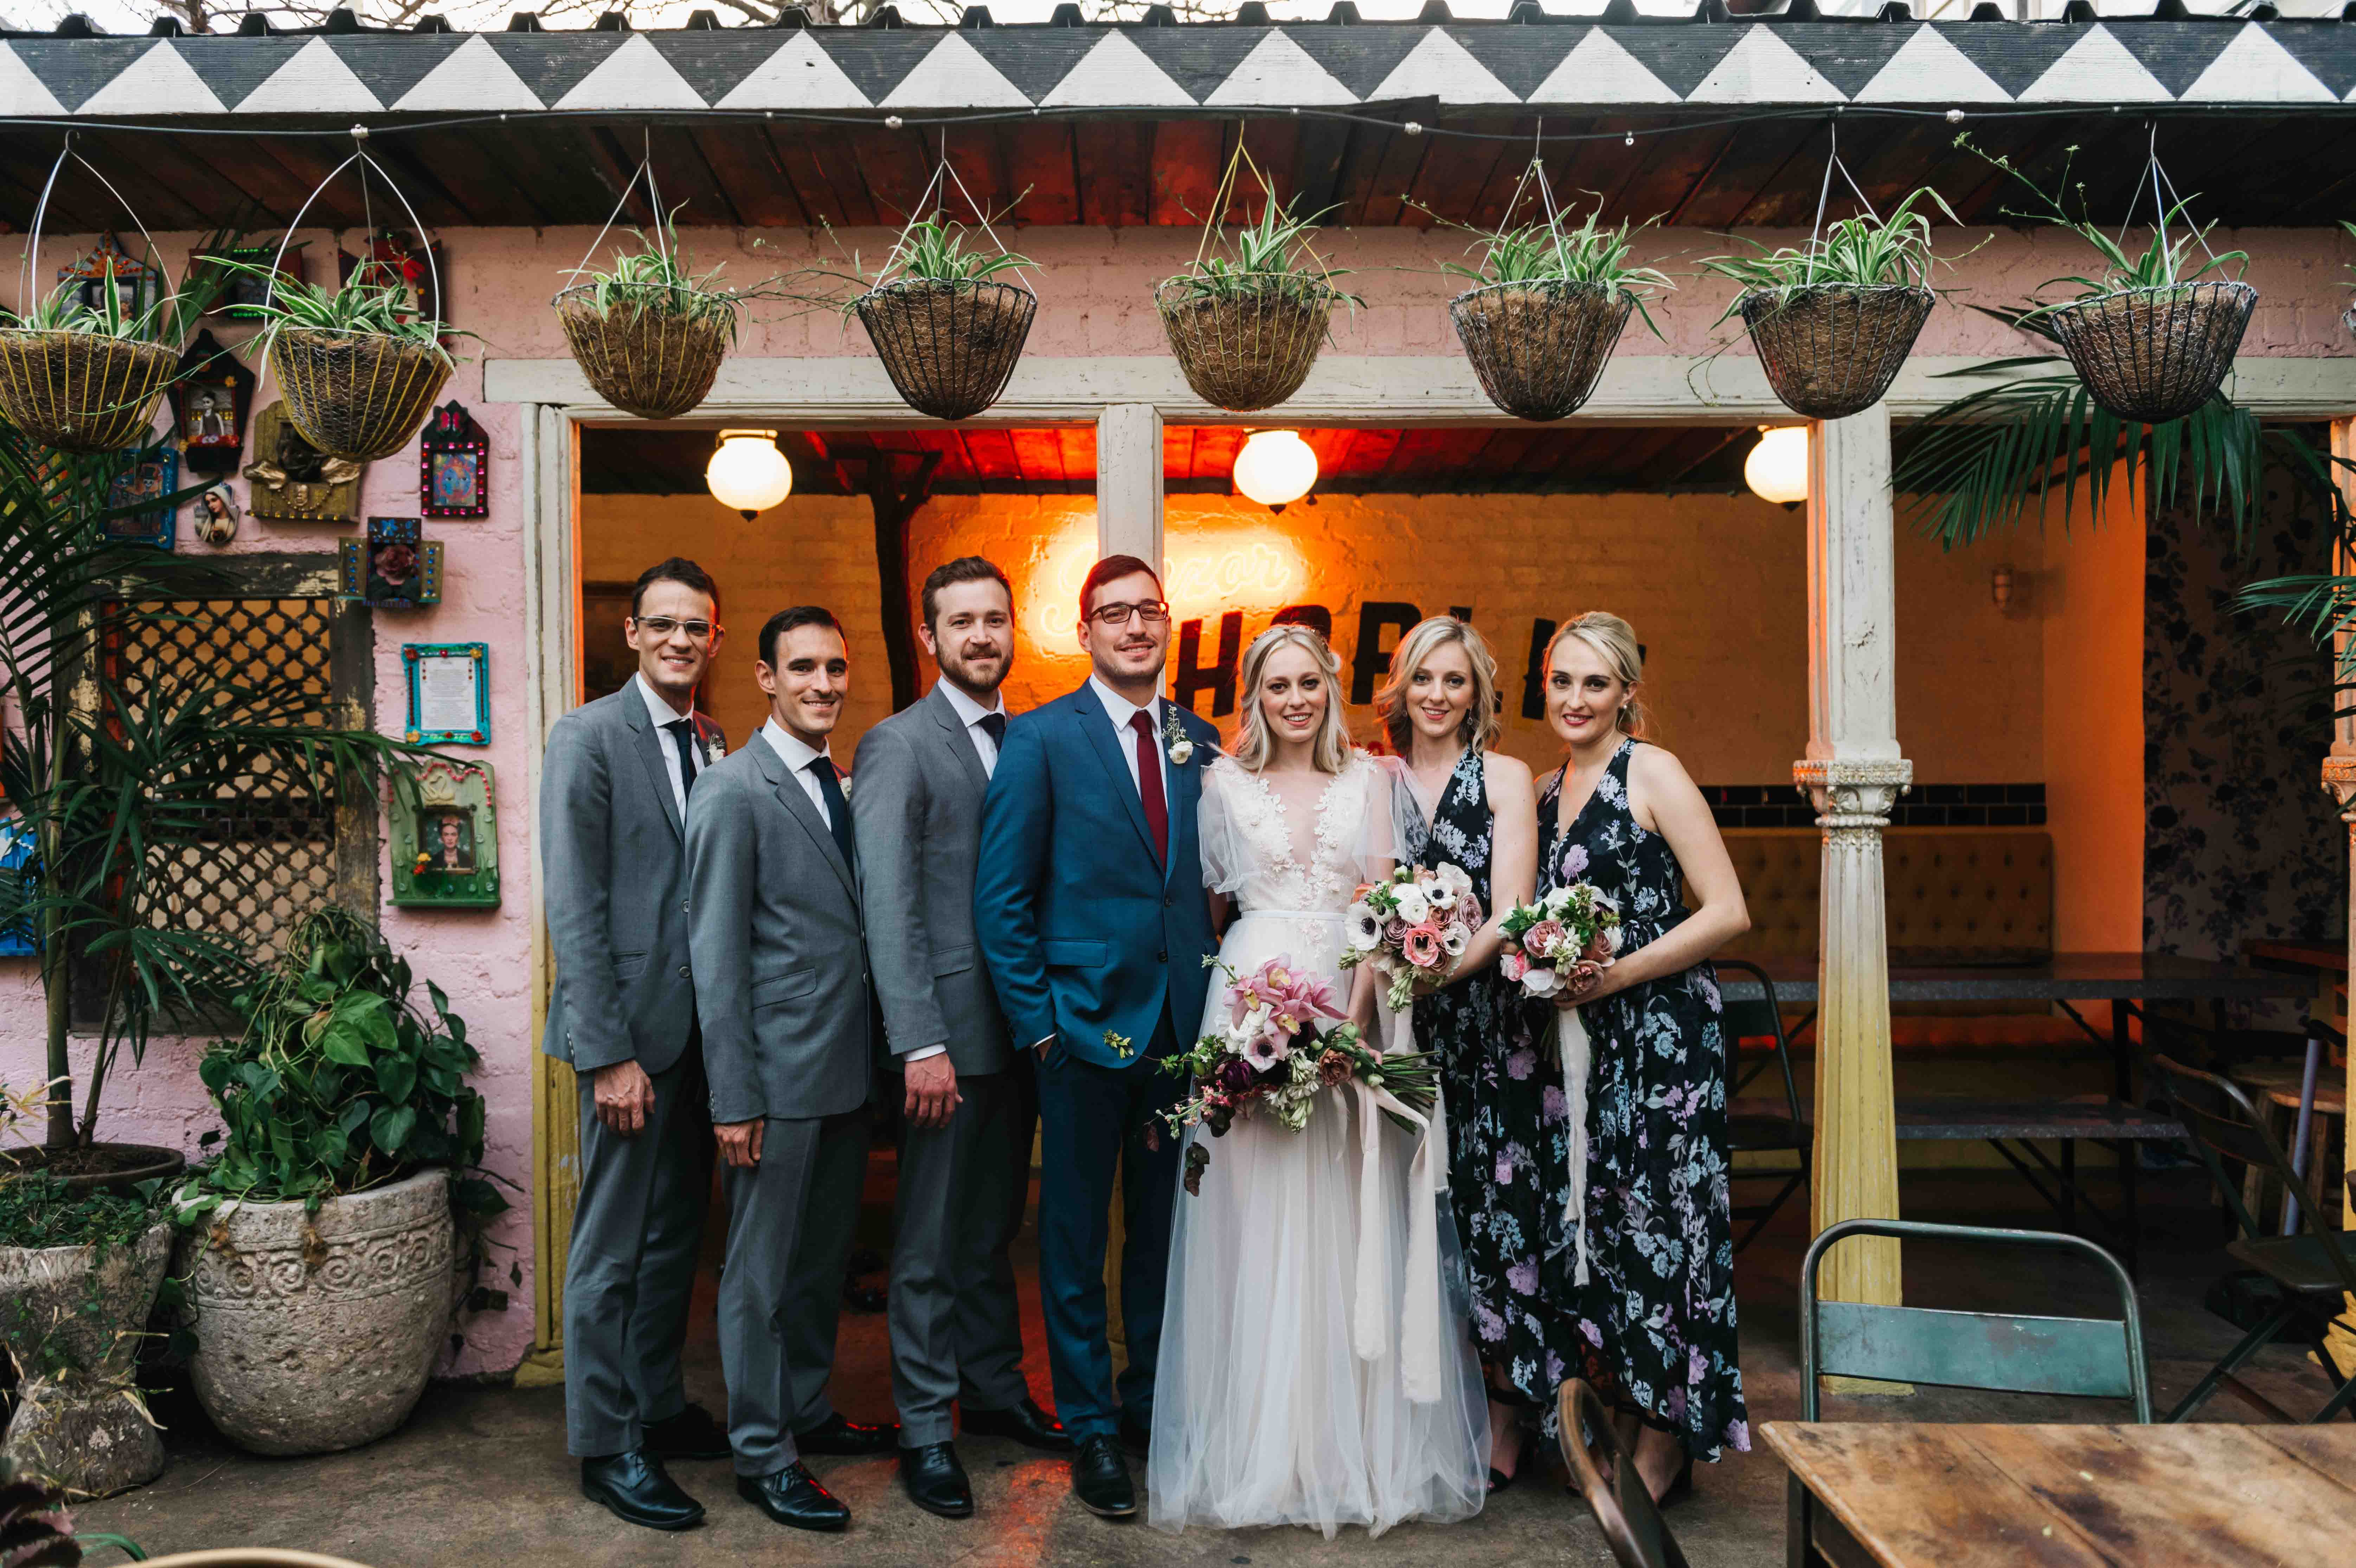 Natalie & Adam_AndStory_The Bridal Party019